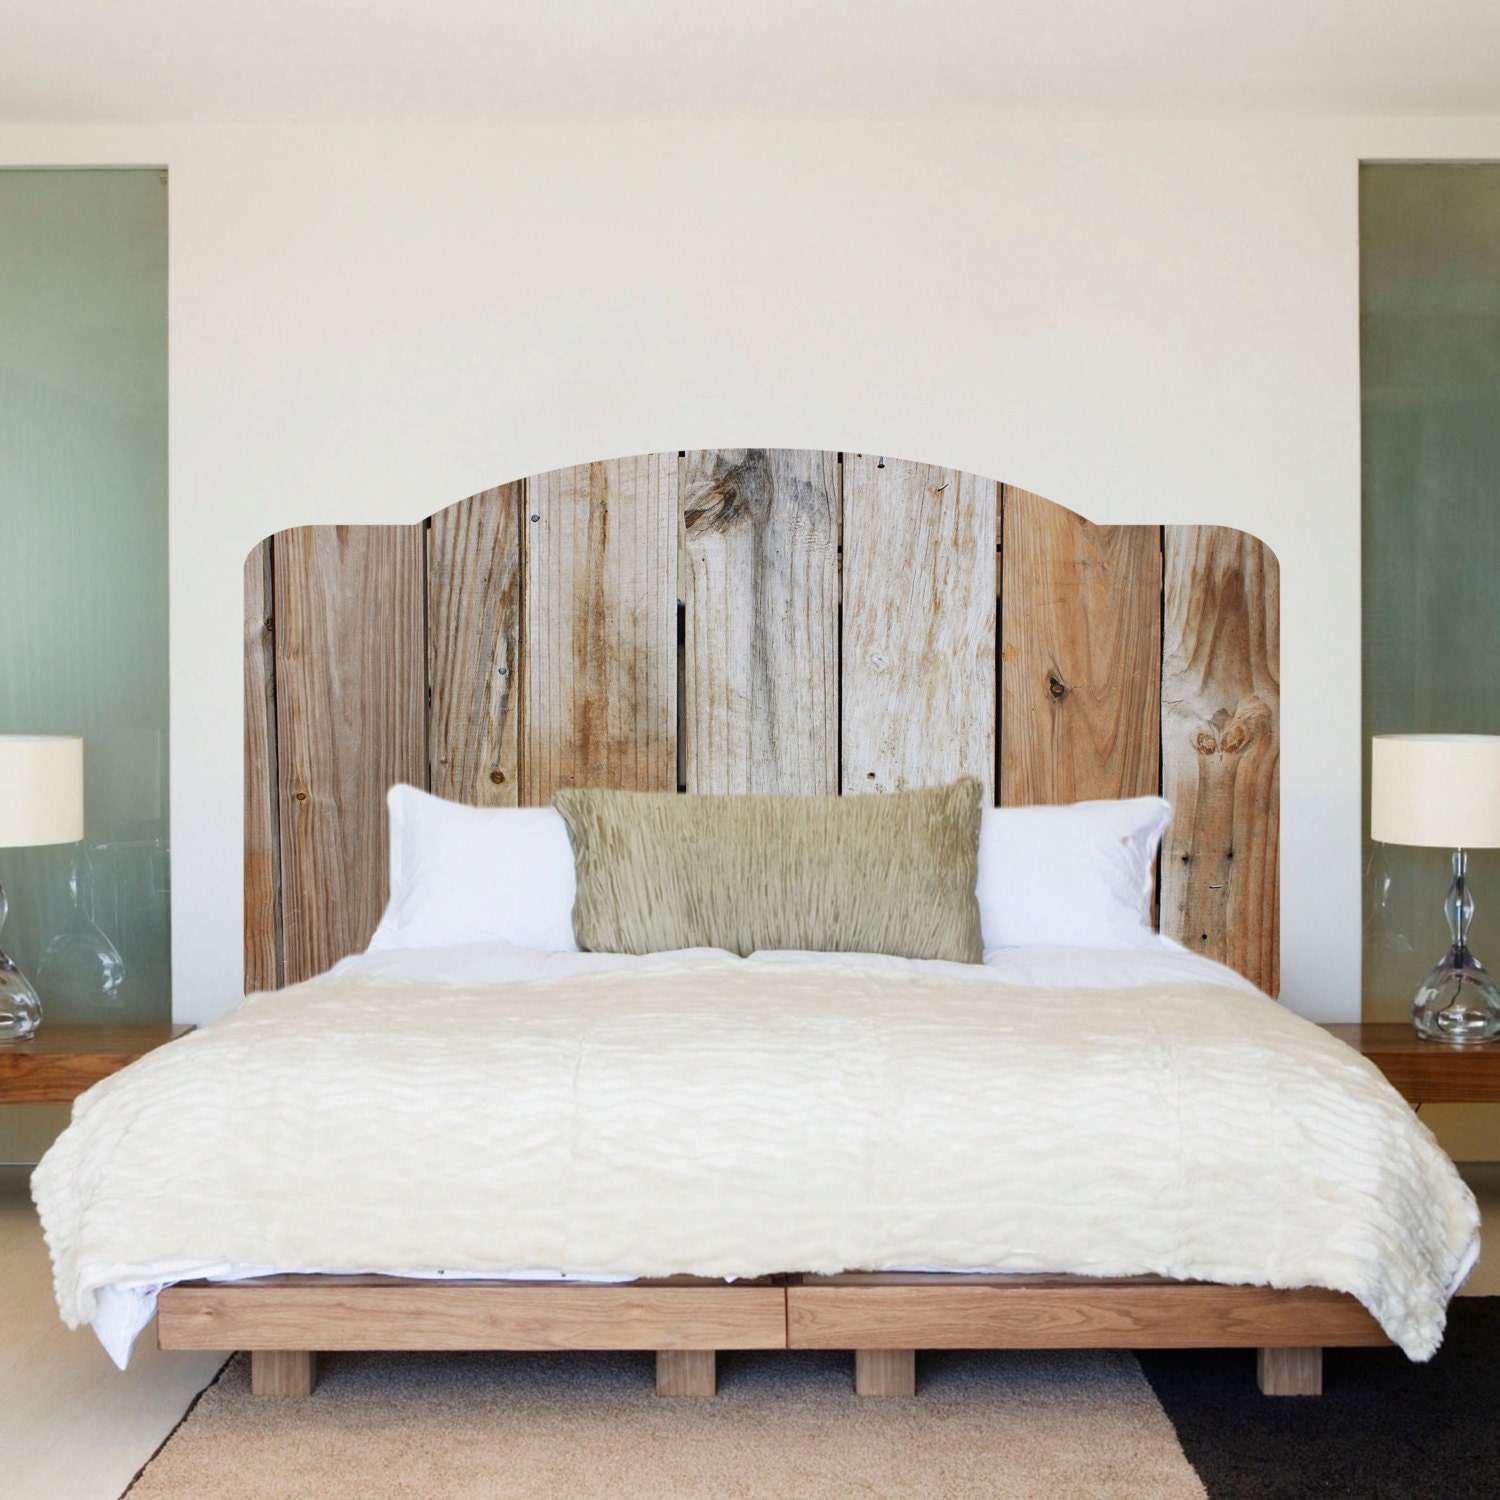 rustic wood headboard wall decal rustic headboard wall mural wooden headboard bedroom wall sticker - Design Wall Decal